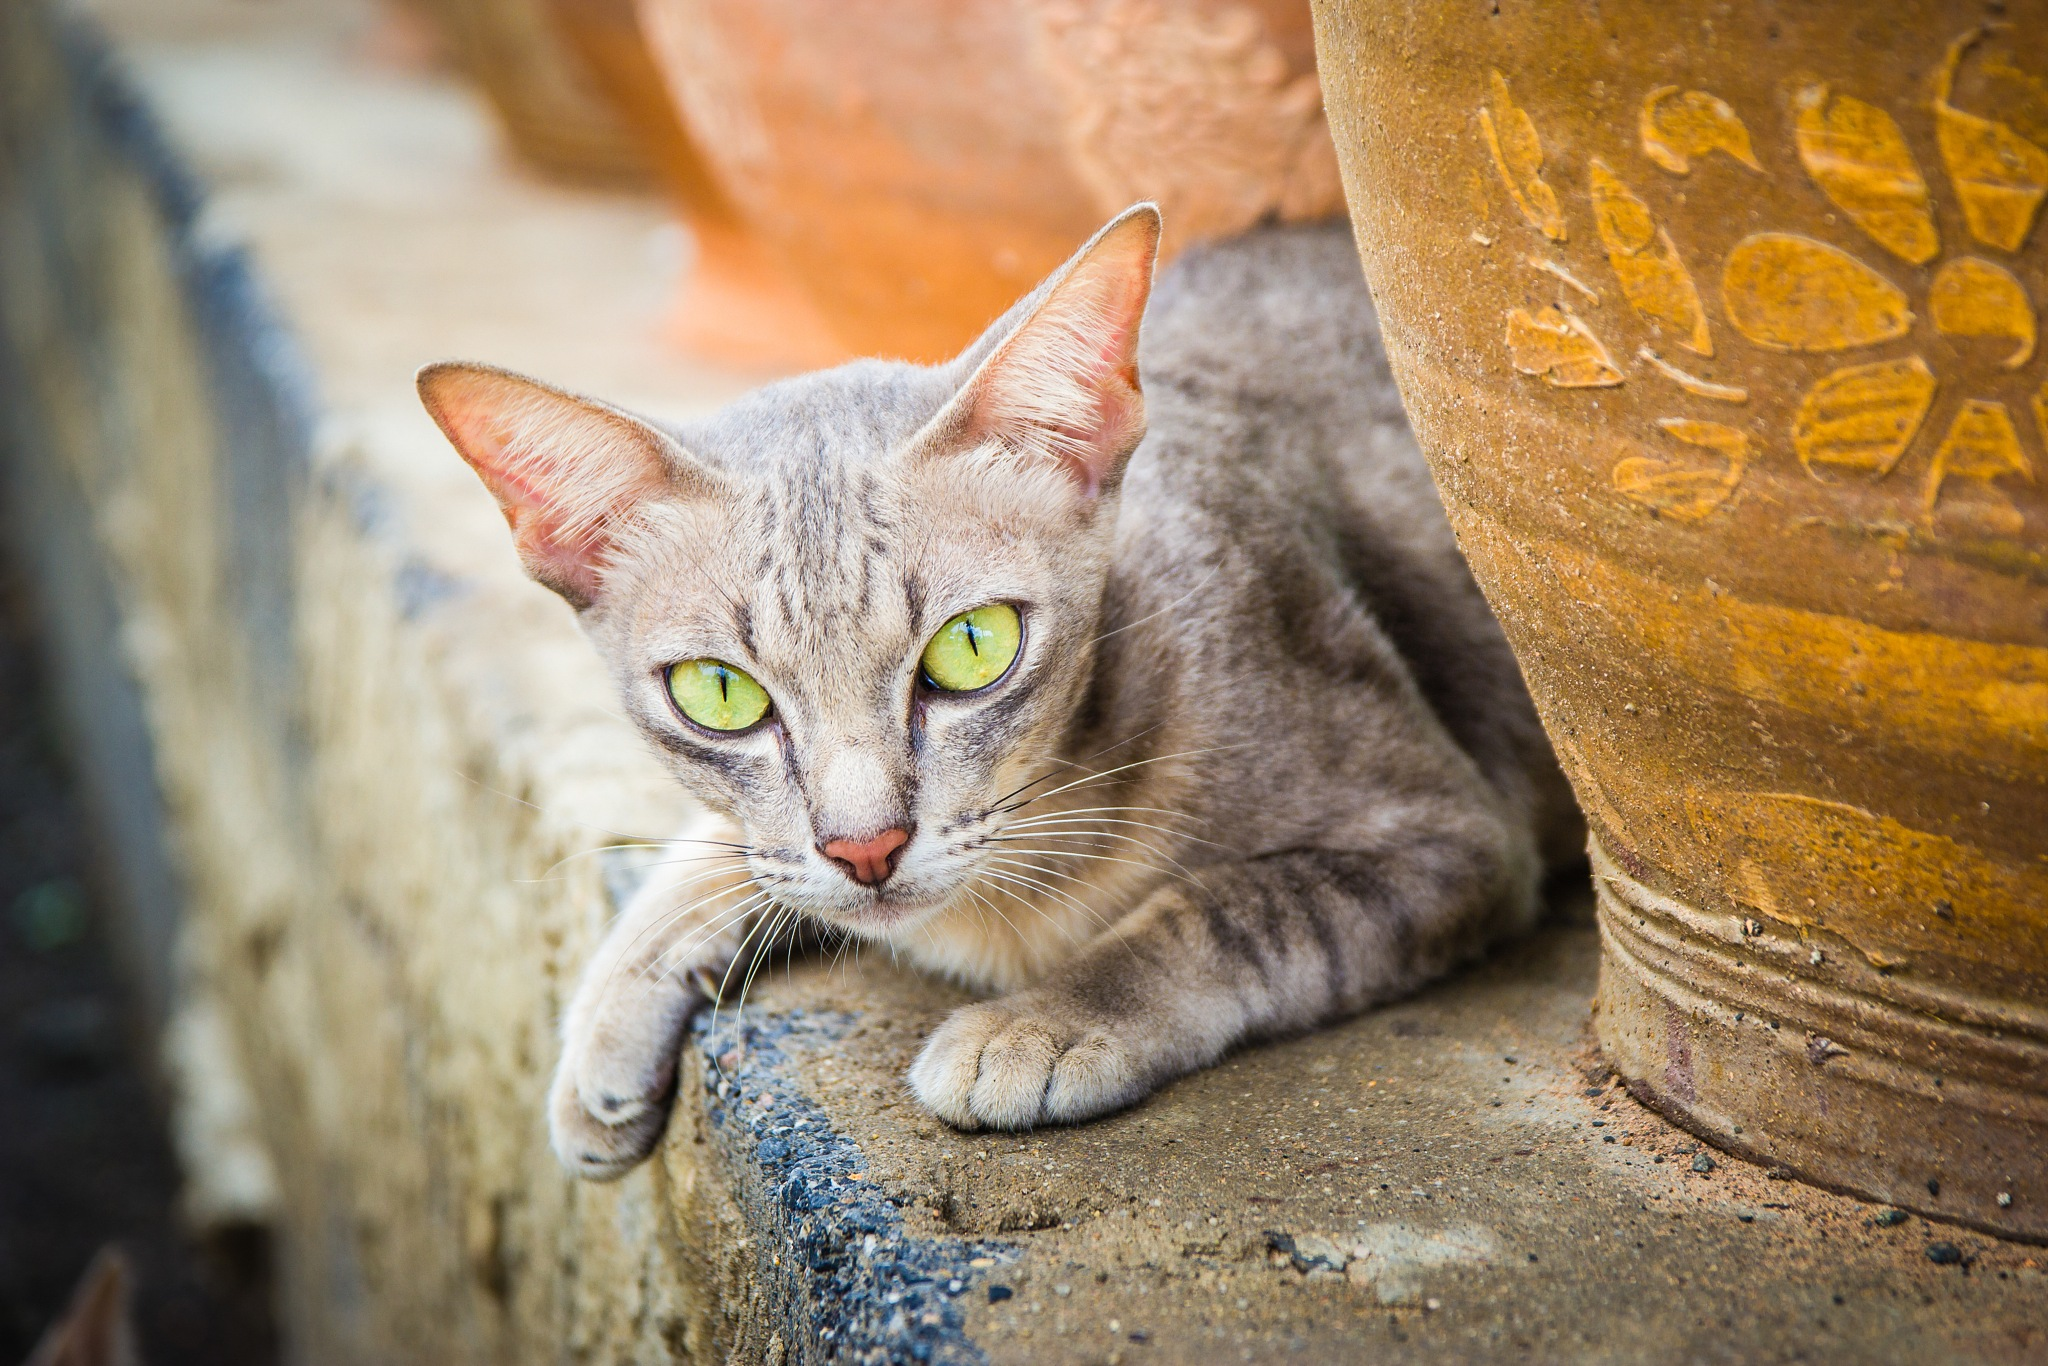 thai cat by Thirachet pendermpan